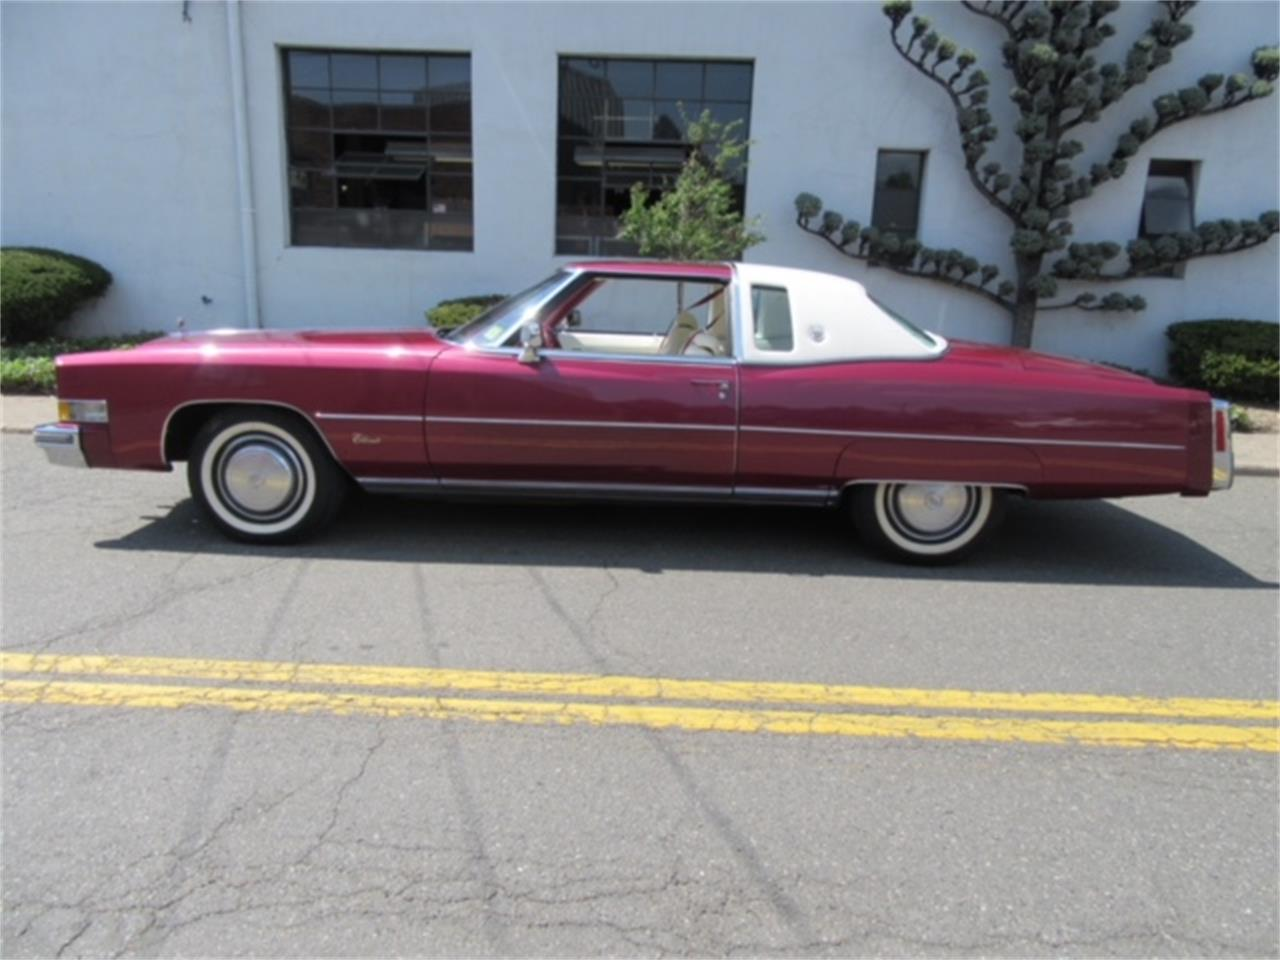 Large Picture of 1974 Cadillac Eldorado located in MILL HALL Pennsylvania Offered by Central Pennsylvania Auto Auction - NHIV